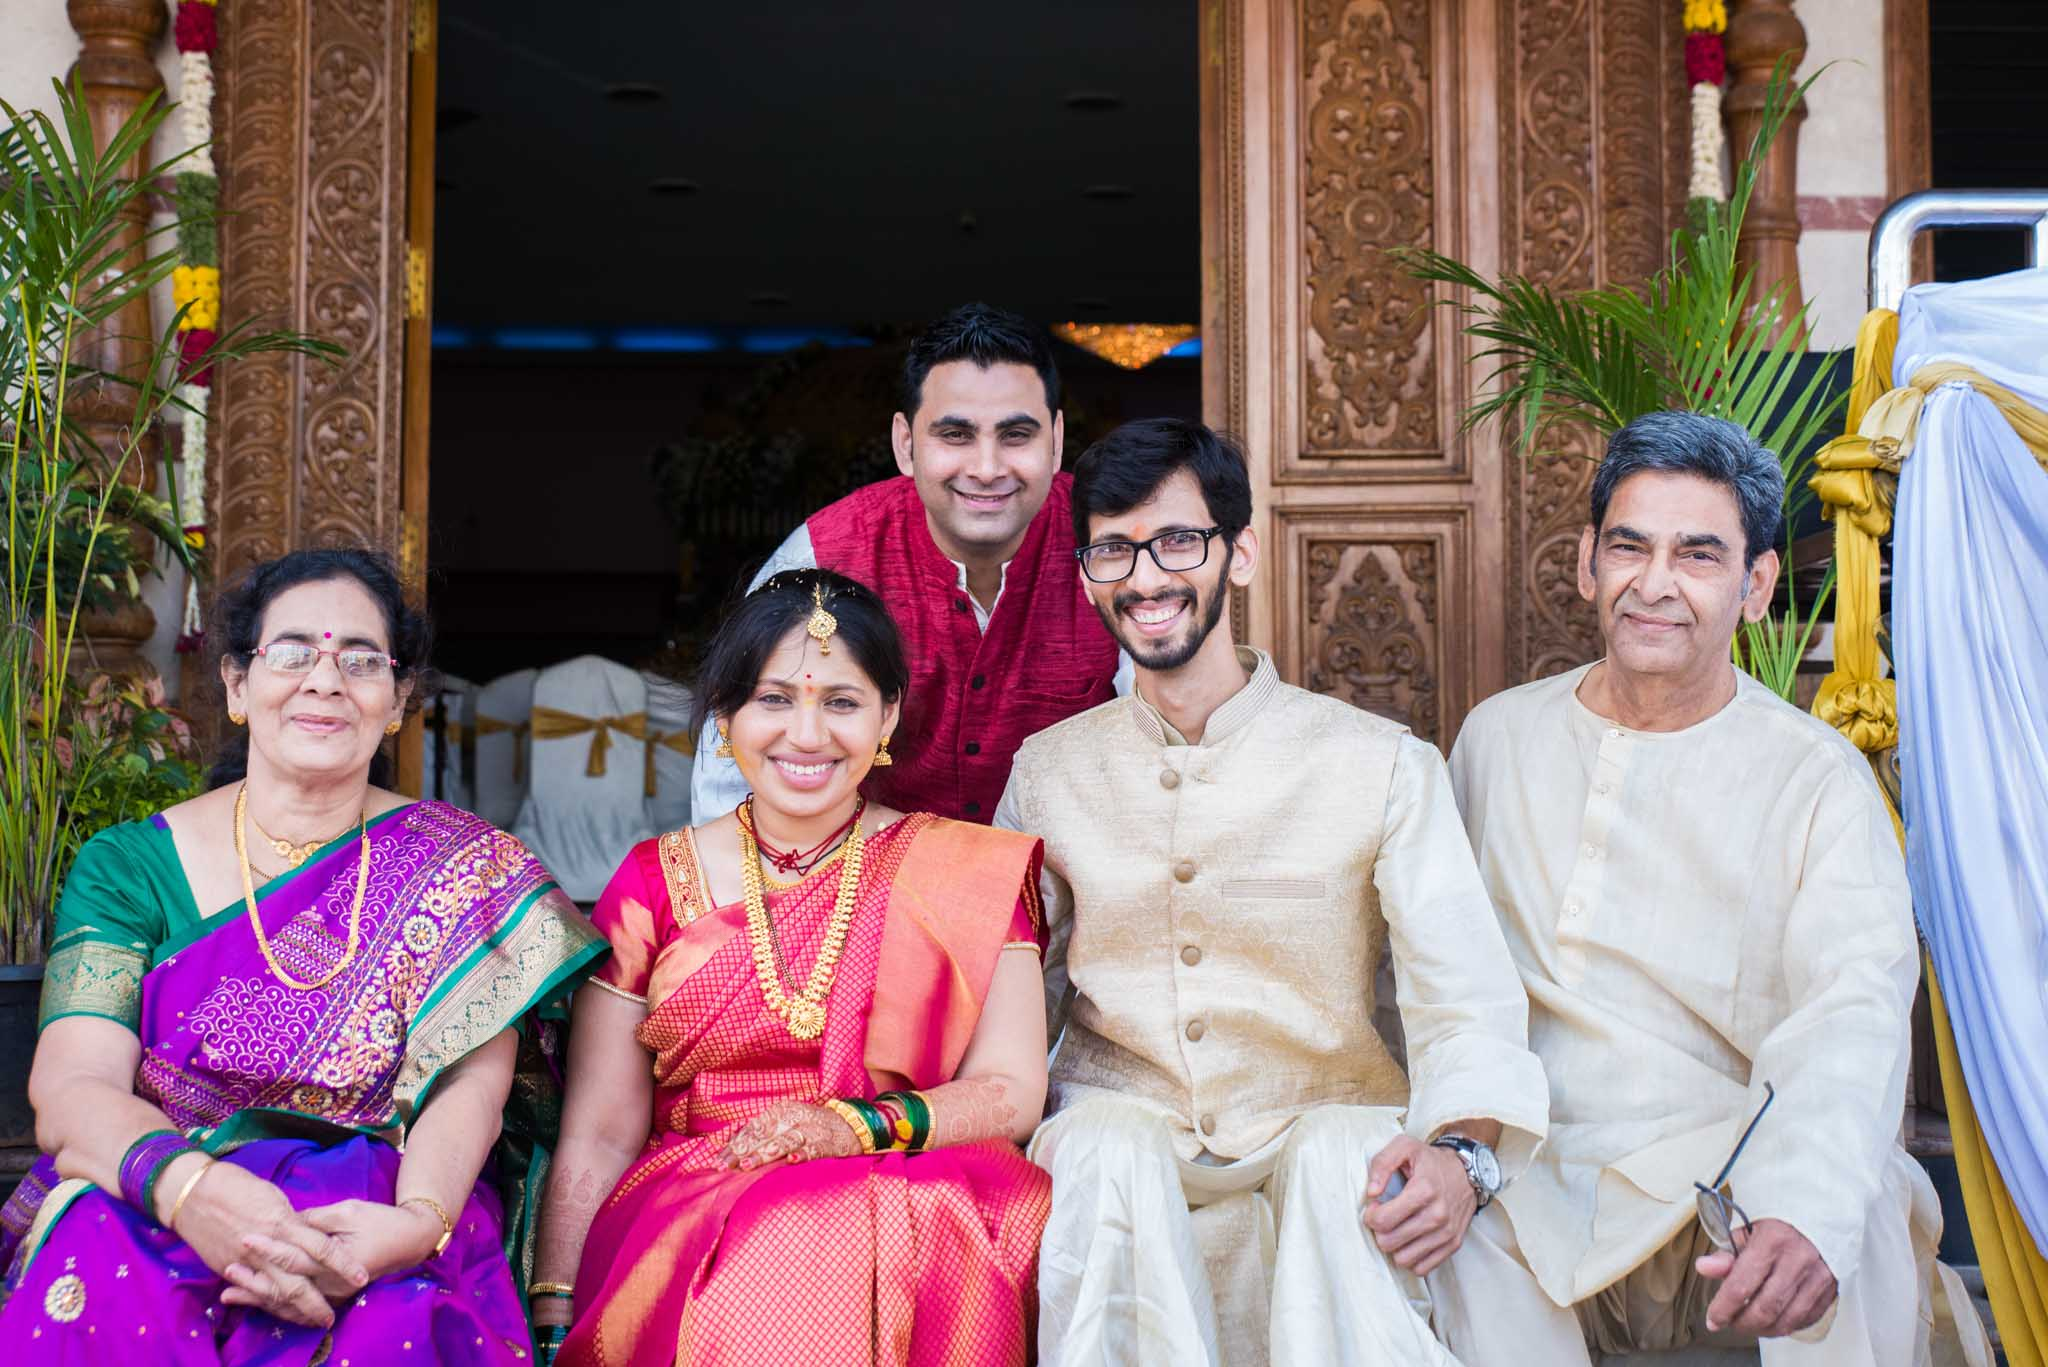 WhatKnot-Candid-Wedding-Photography-Mumbai-Bangalore-209